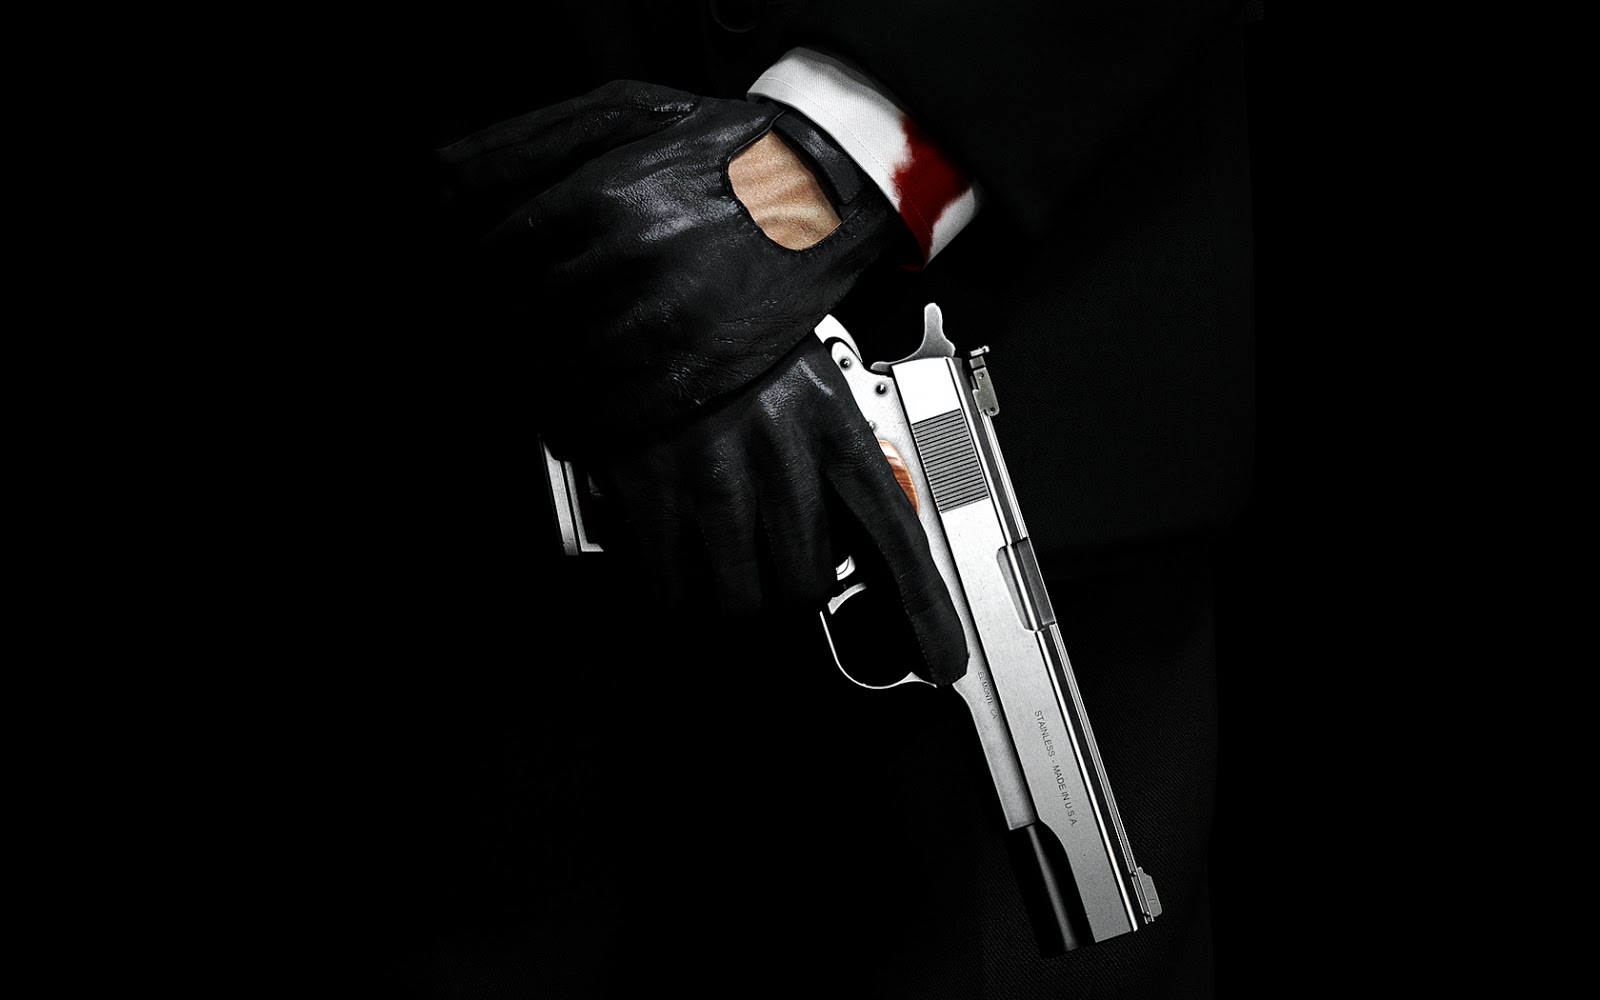 agent 47 hd wallpapers - photo #10